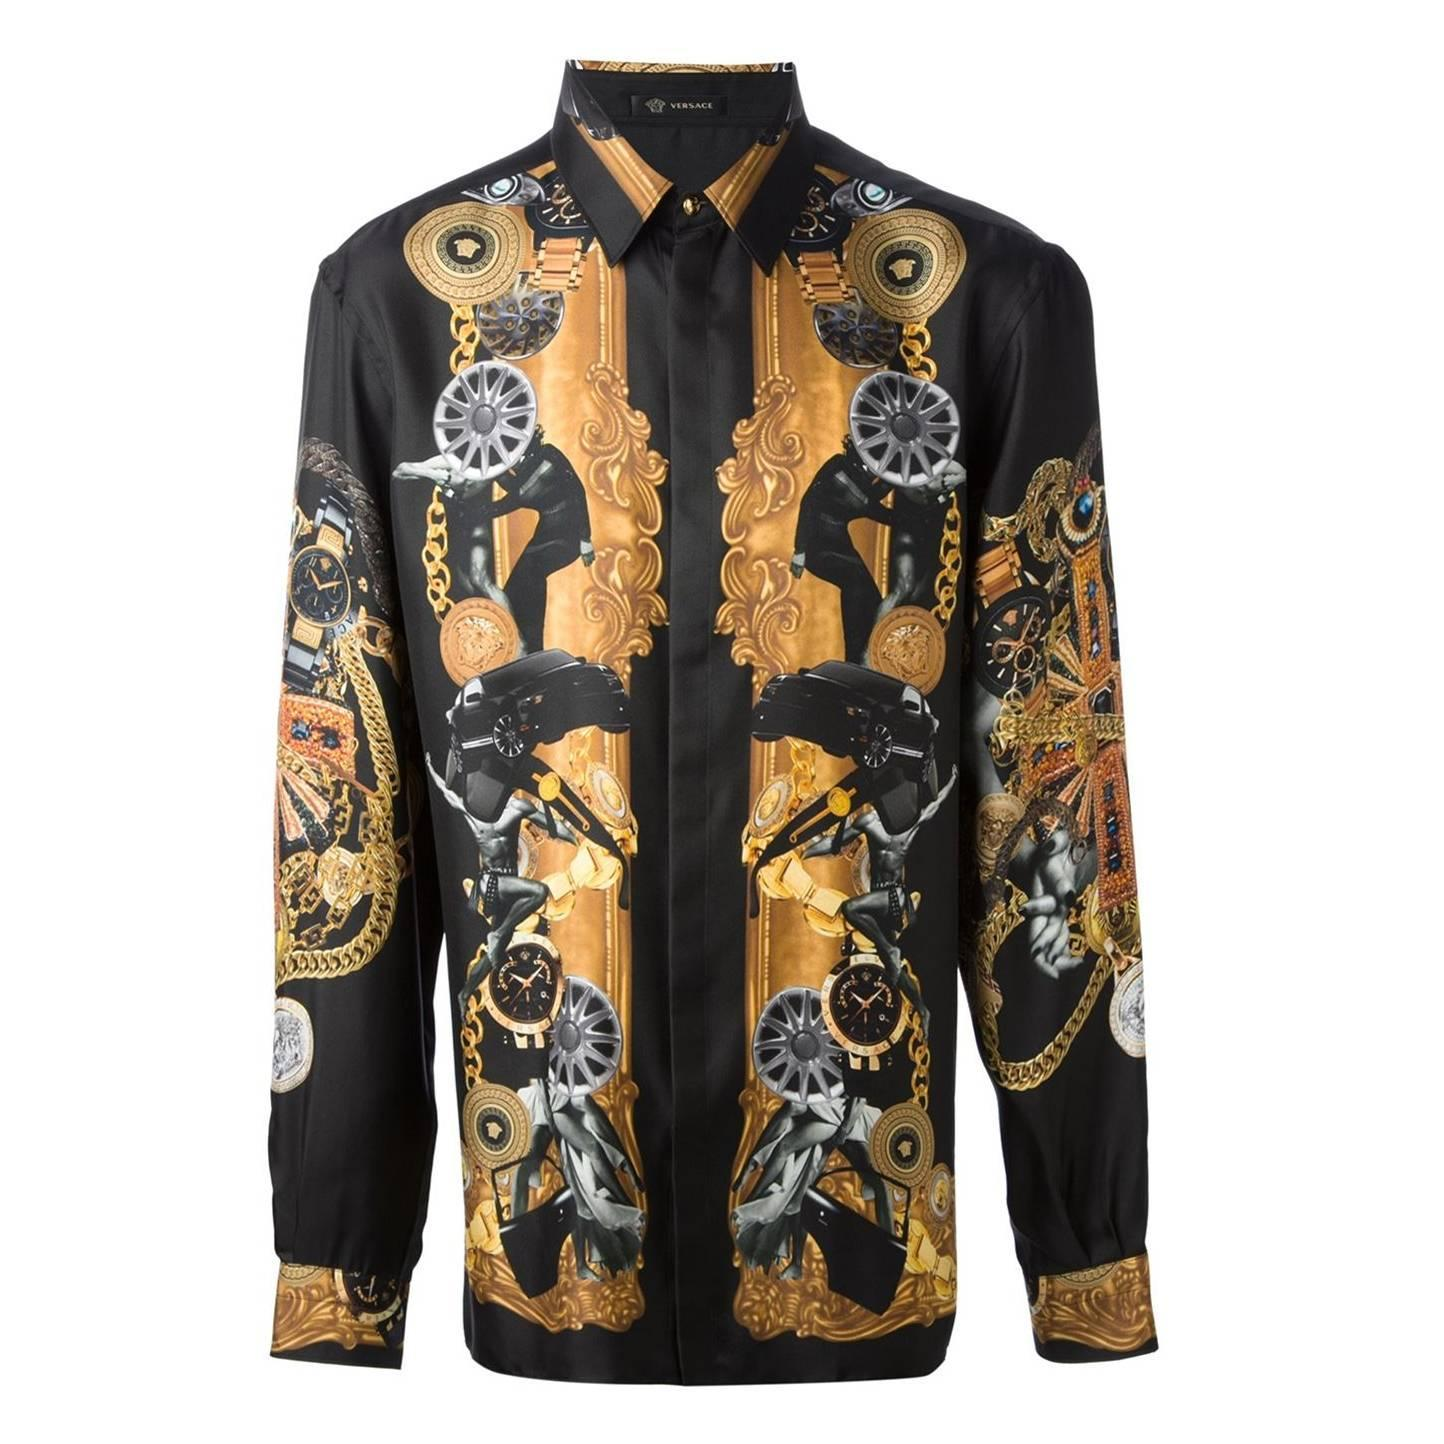 versace 100 silk black printed men 39 s shirt for sale at. Black Bedroom Furniture Sets. Home Design Ideas